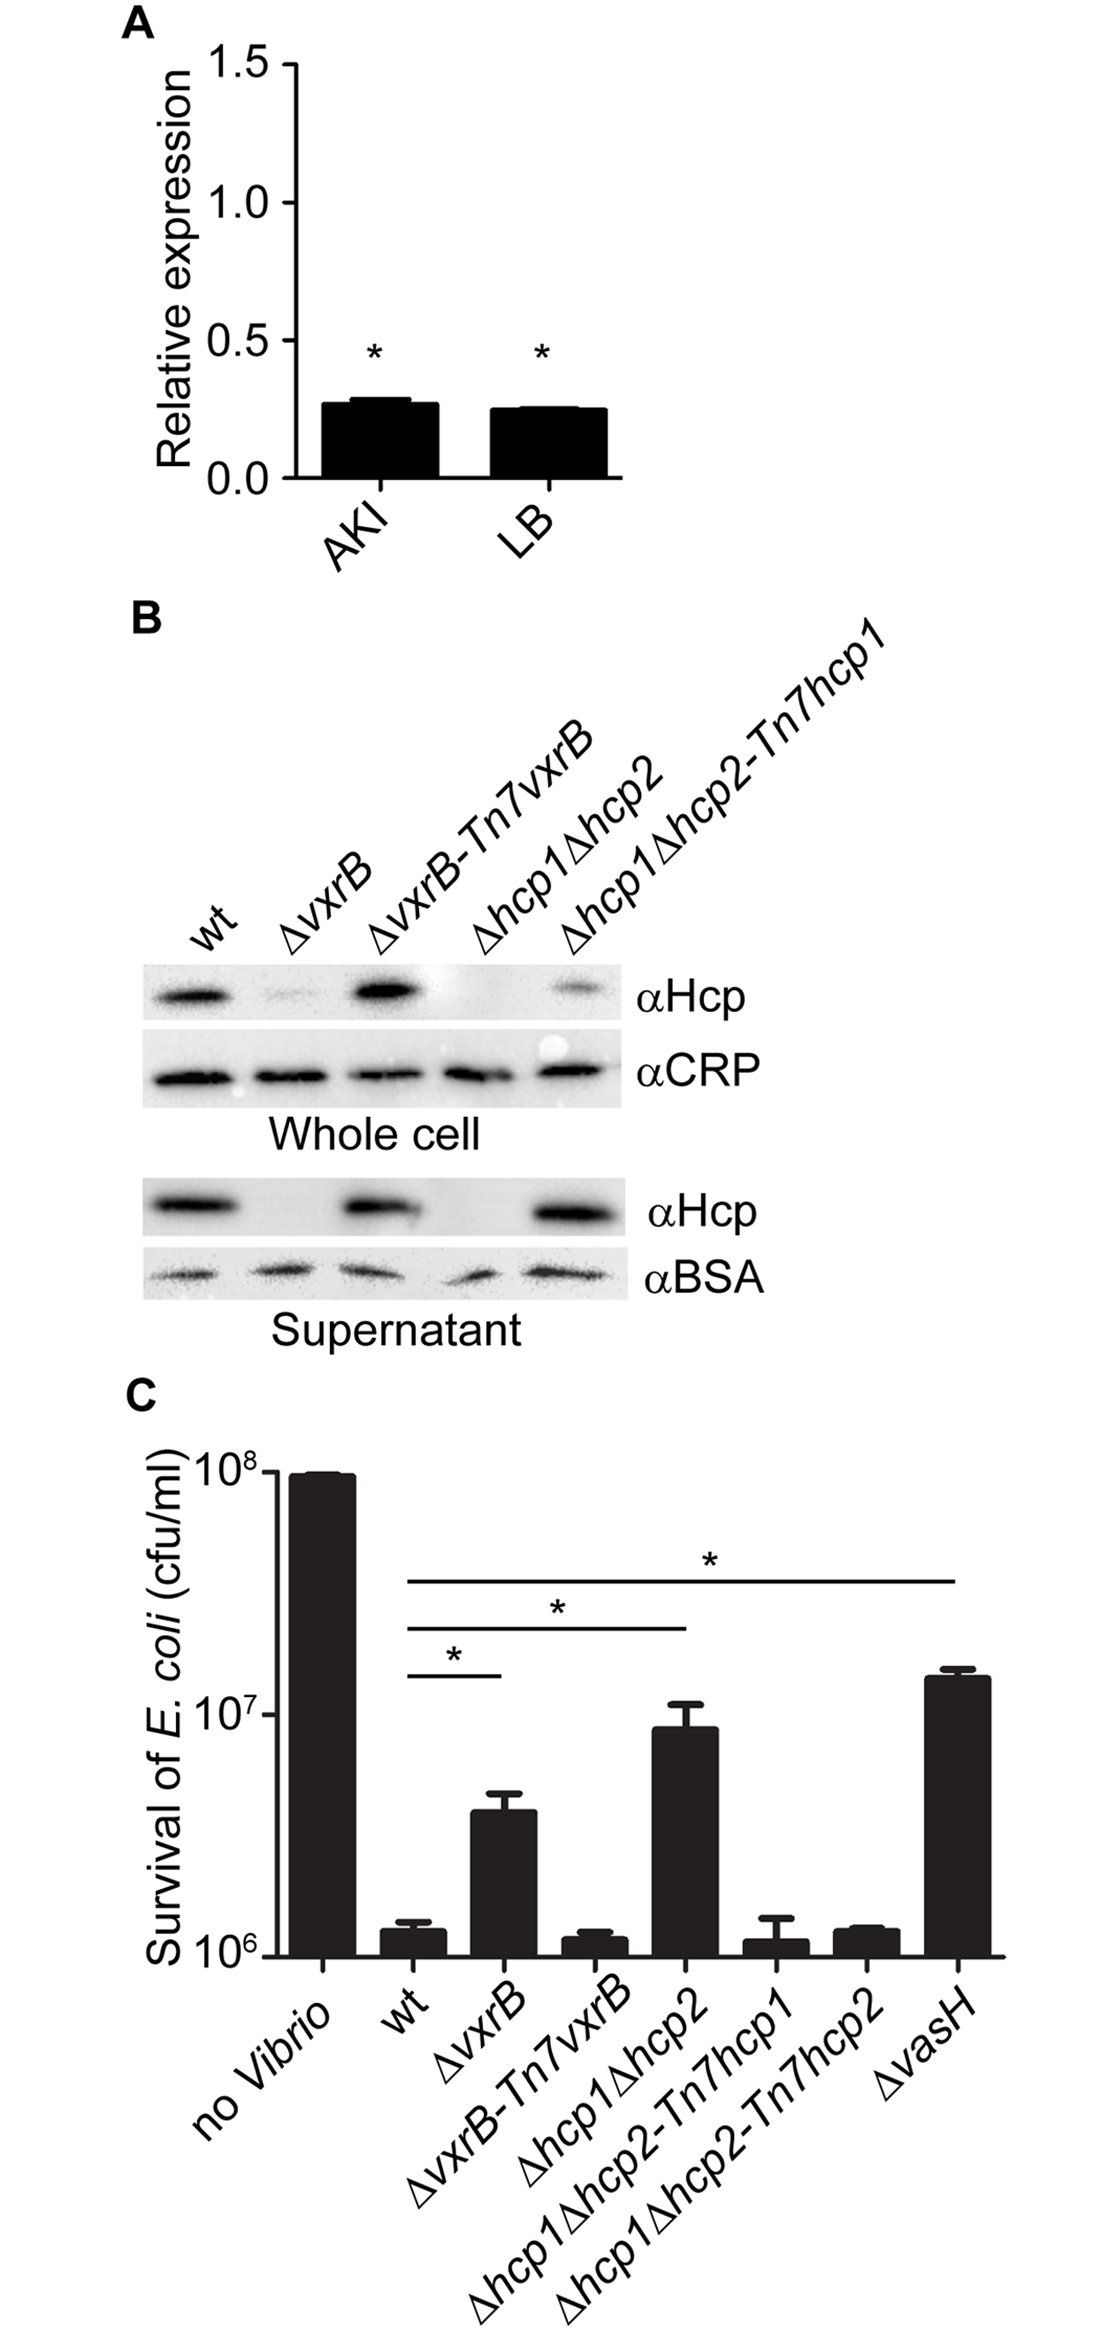 Analysis of Hcp production and secretion in the <i>vxrB</i> mutant.